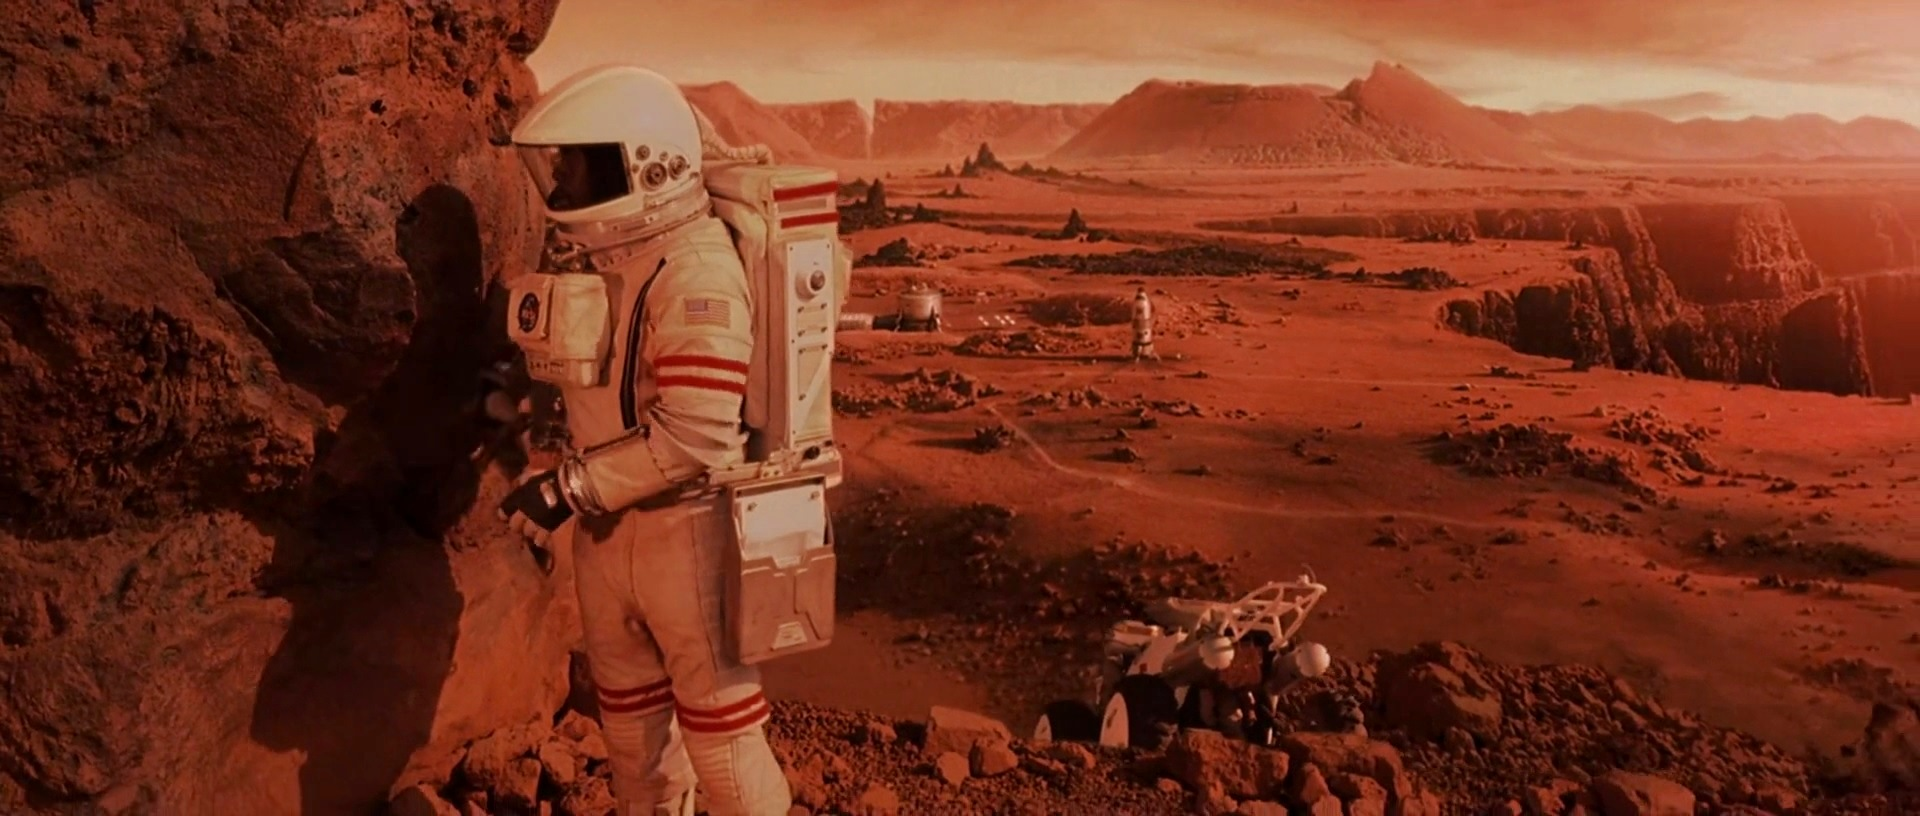 HD images from Mission to Mars (2000) movie   human Mars